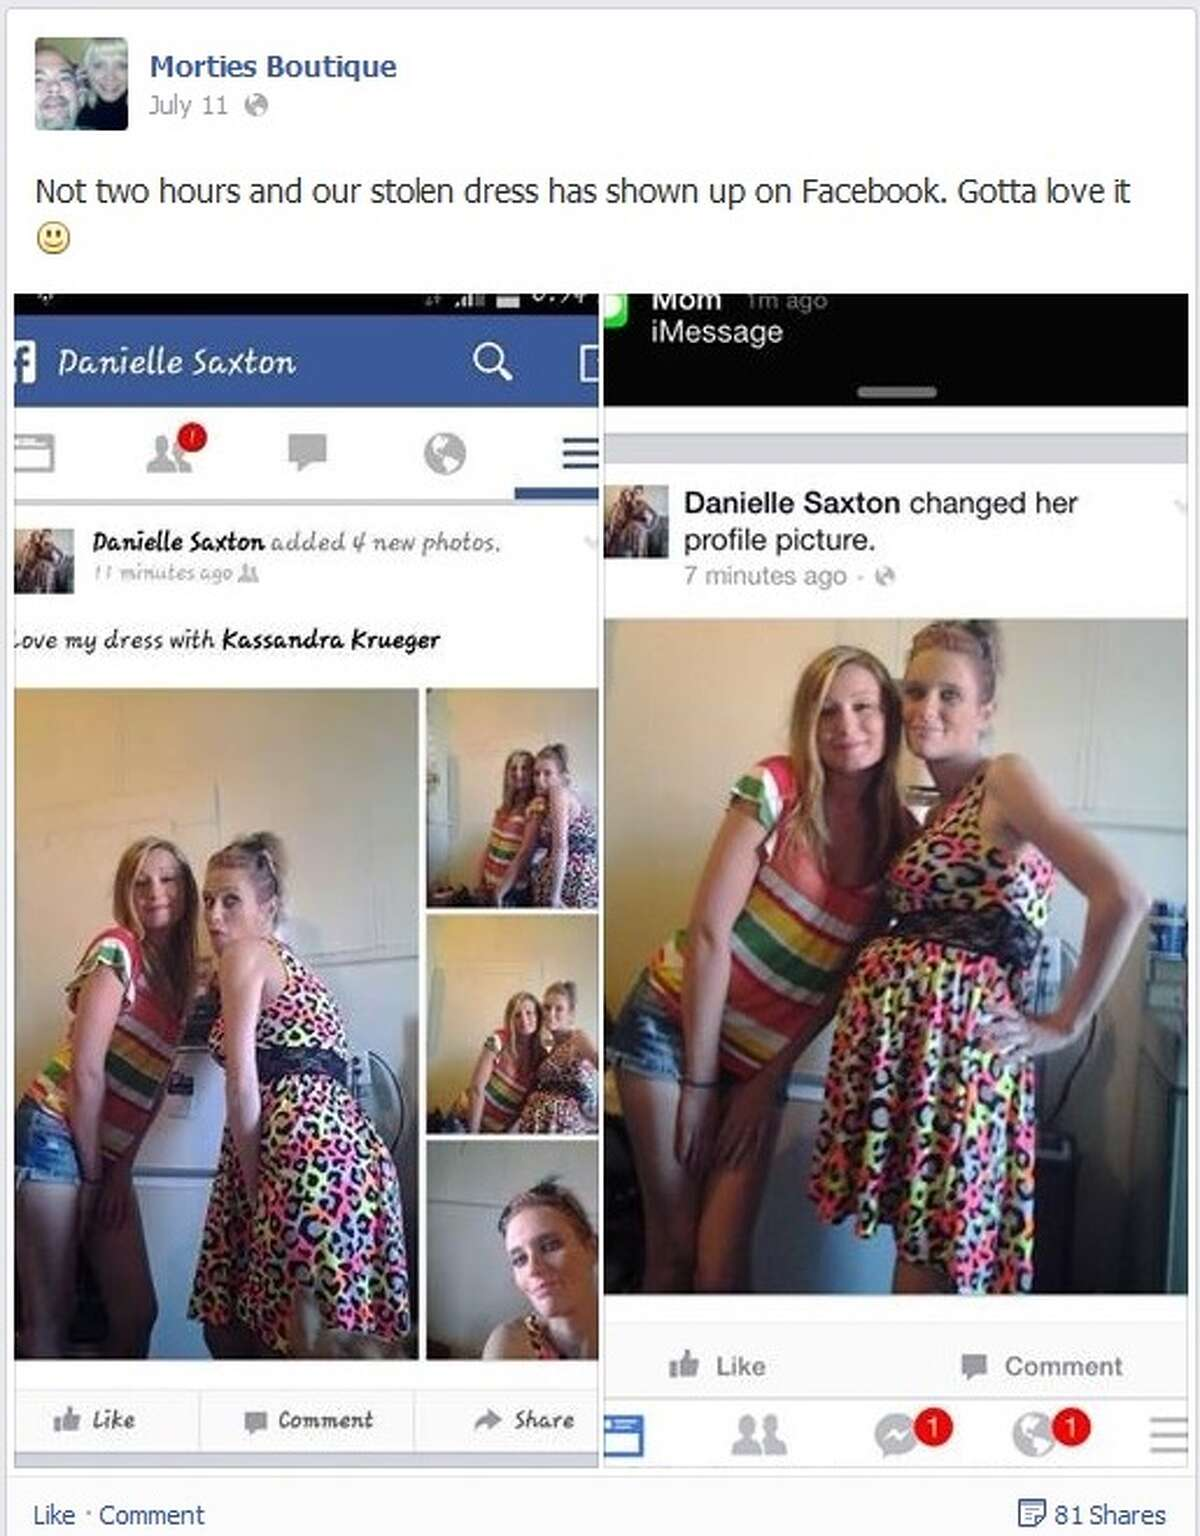 Mortie's Boutique posts pictures of Danielle Saxton posing in a dress it reported stolen.